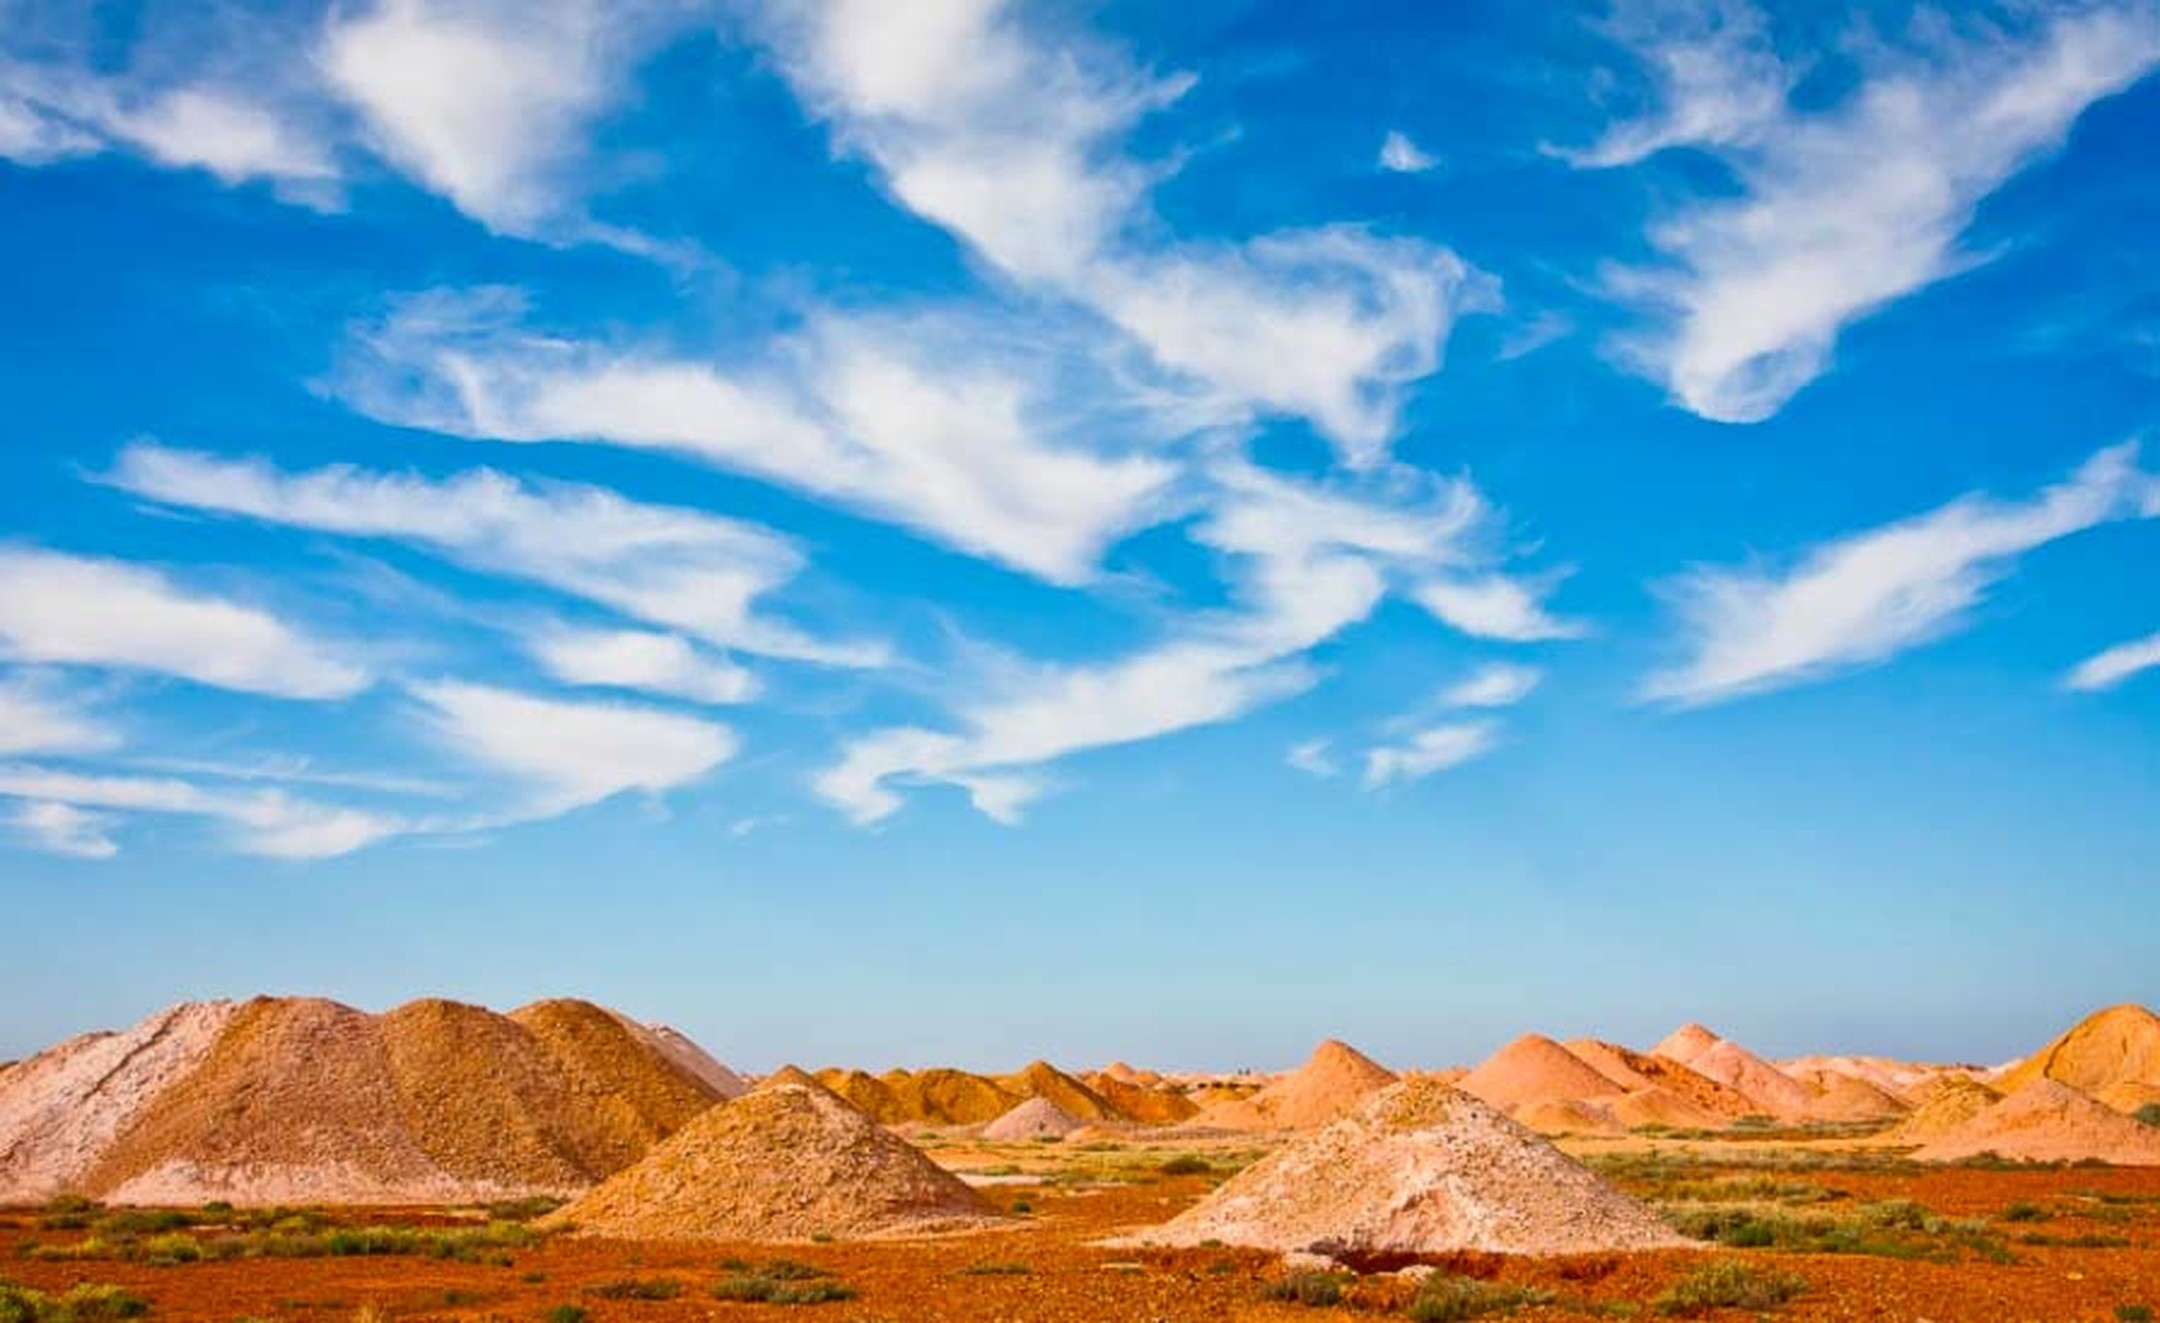 Mullock Heaps, the leftover residual dirt from the opal mining process, which may contain small pieces of opal fragments that were missed by the miners, is a popular spot for locals and tourists. Photo: Courtesy of South Cape Photography / District Counci